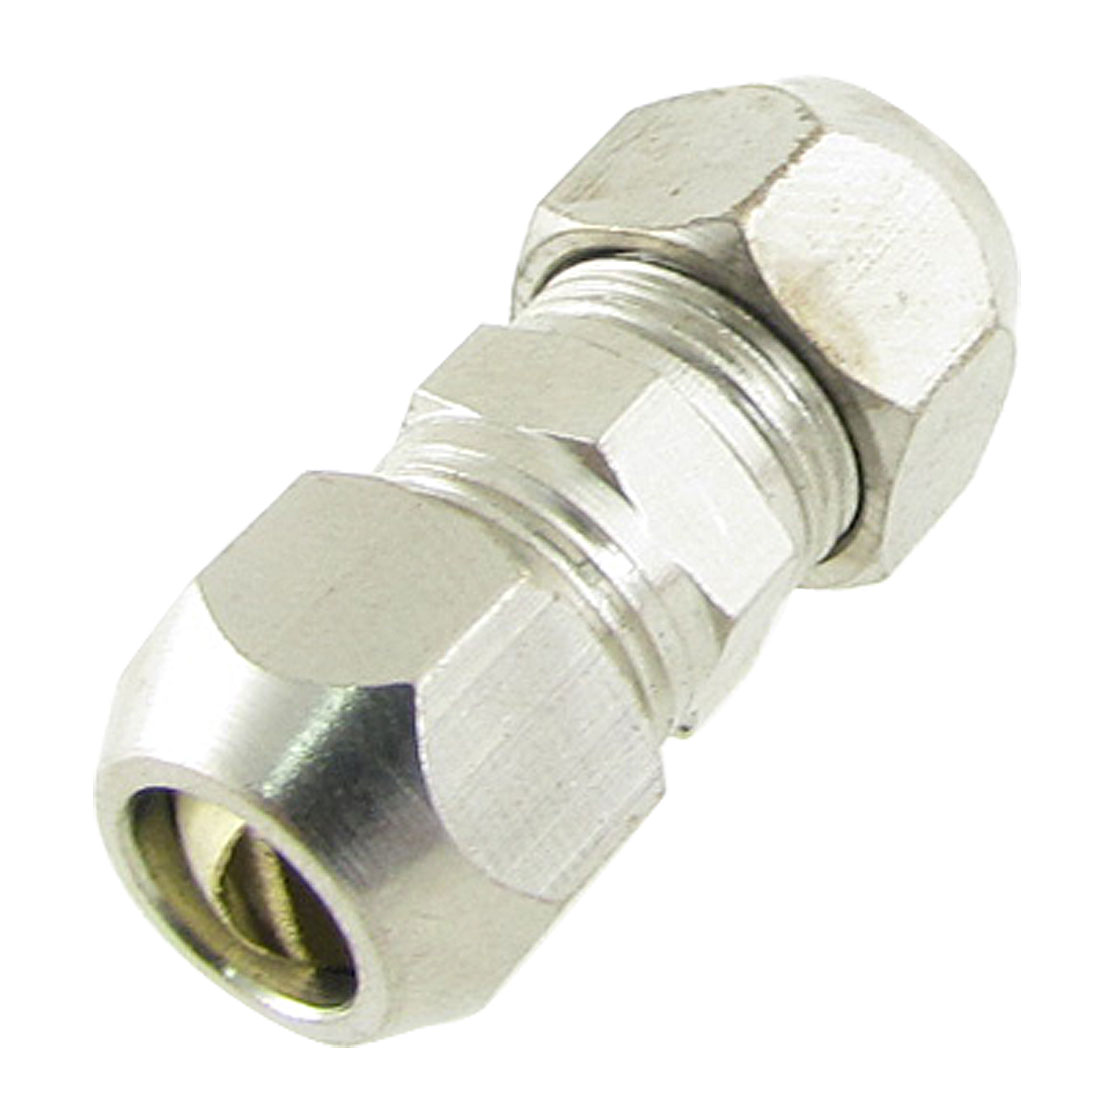 "8mm 5/16"" OD Air Pneumatic Tube Compression Fitting Coupling Coupler"